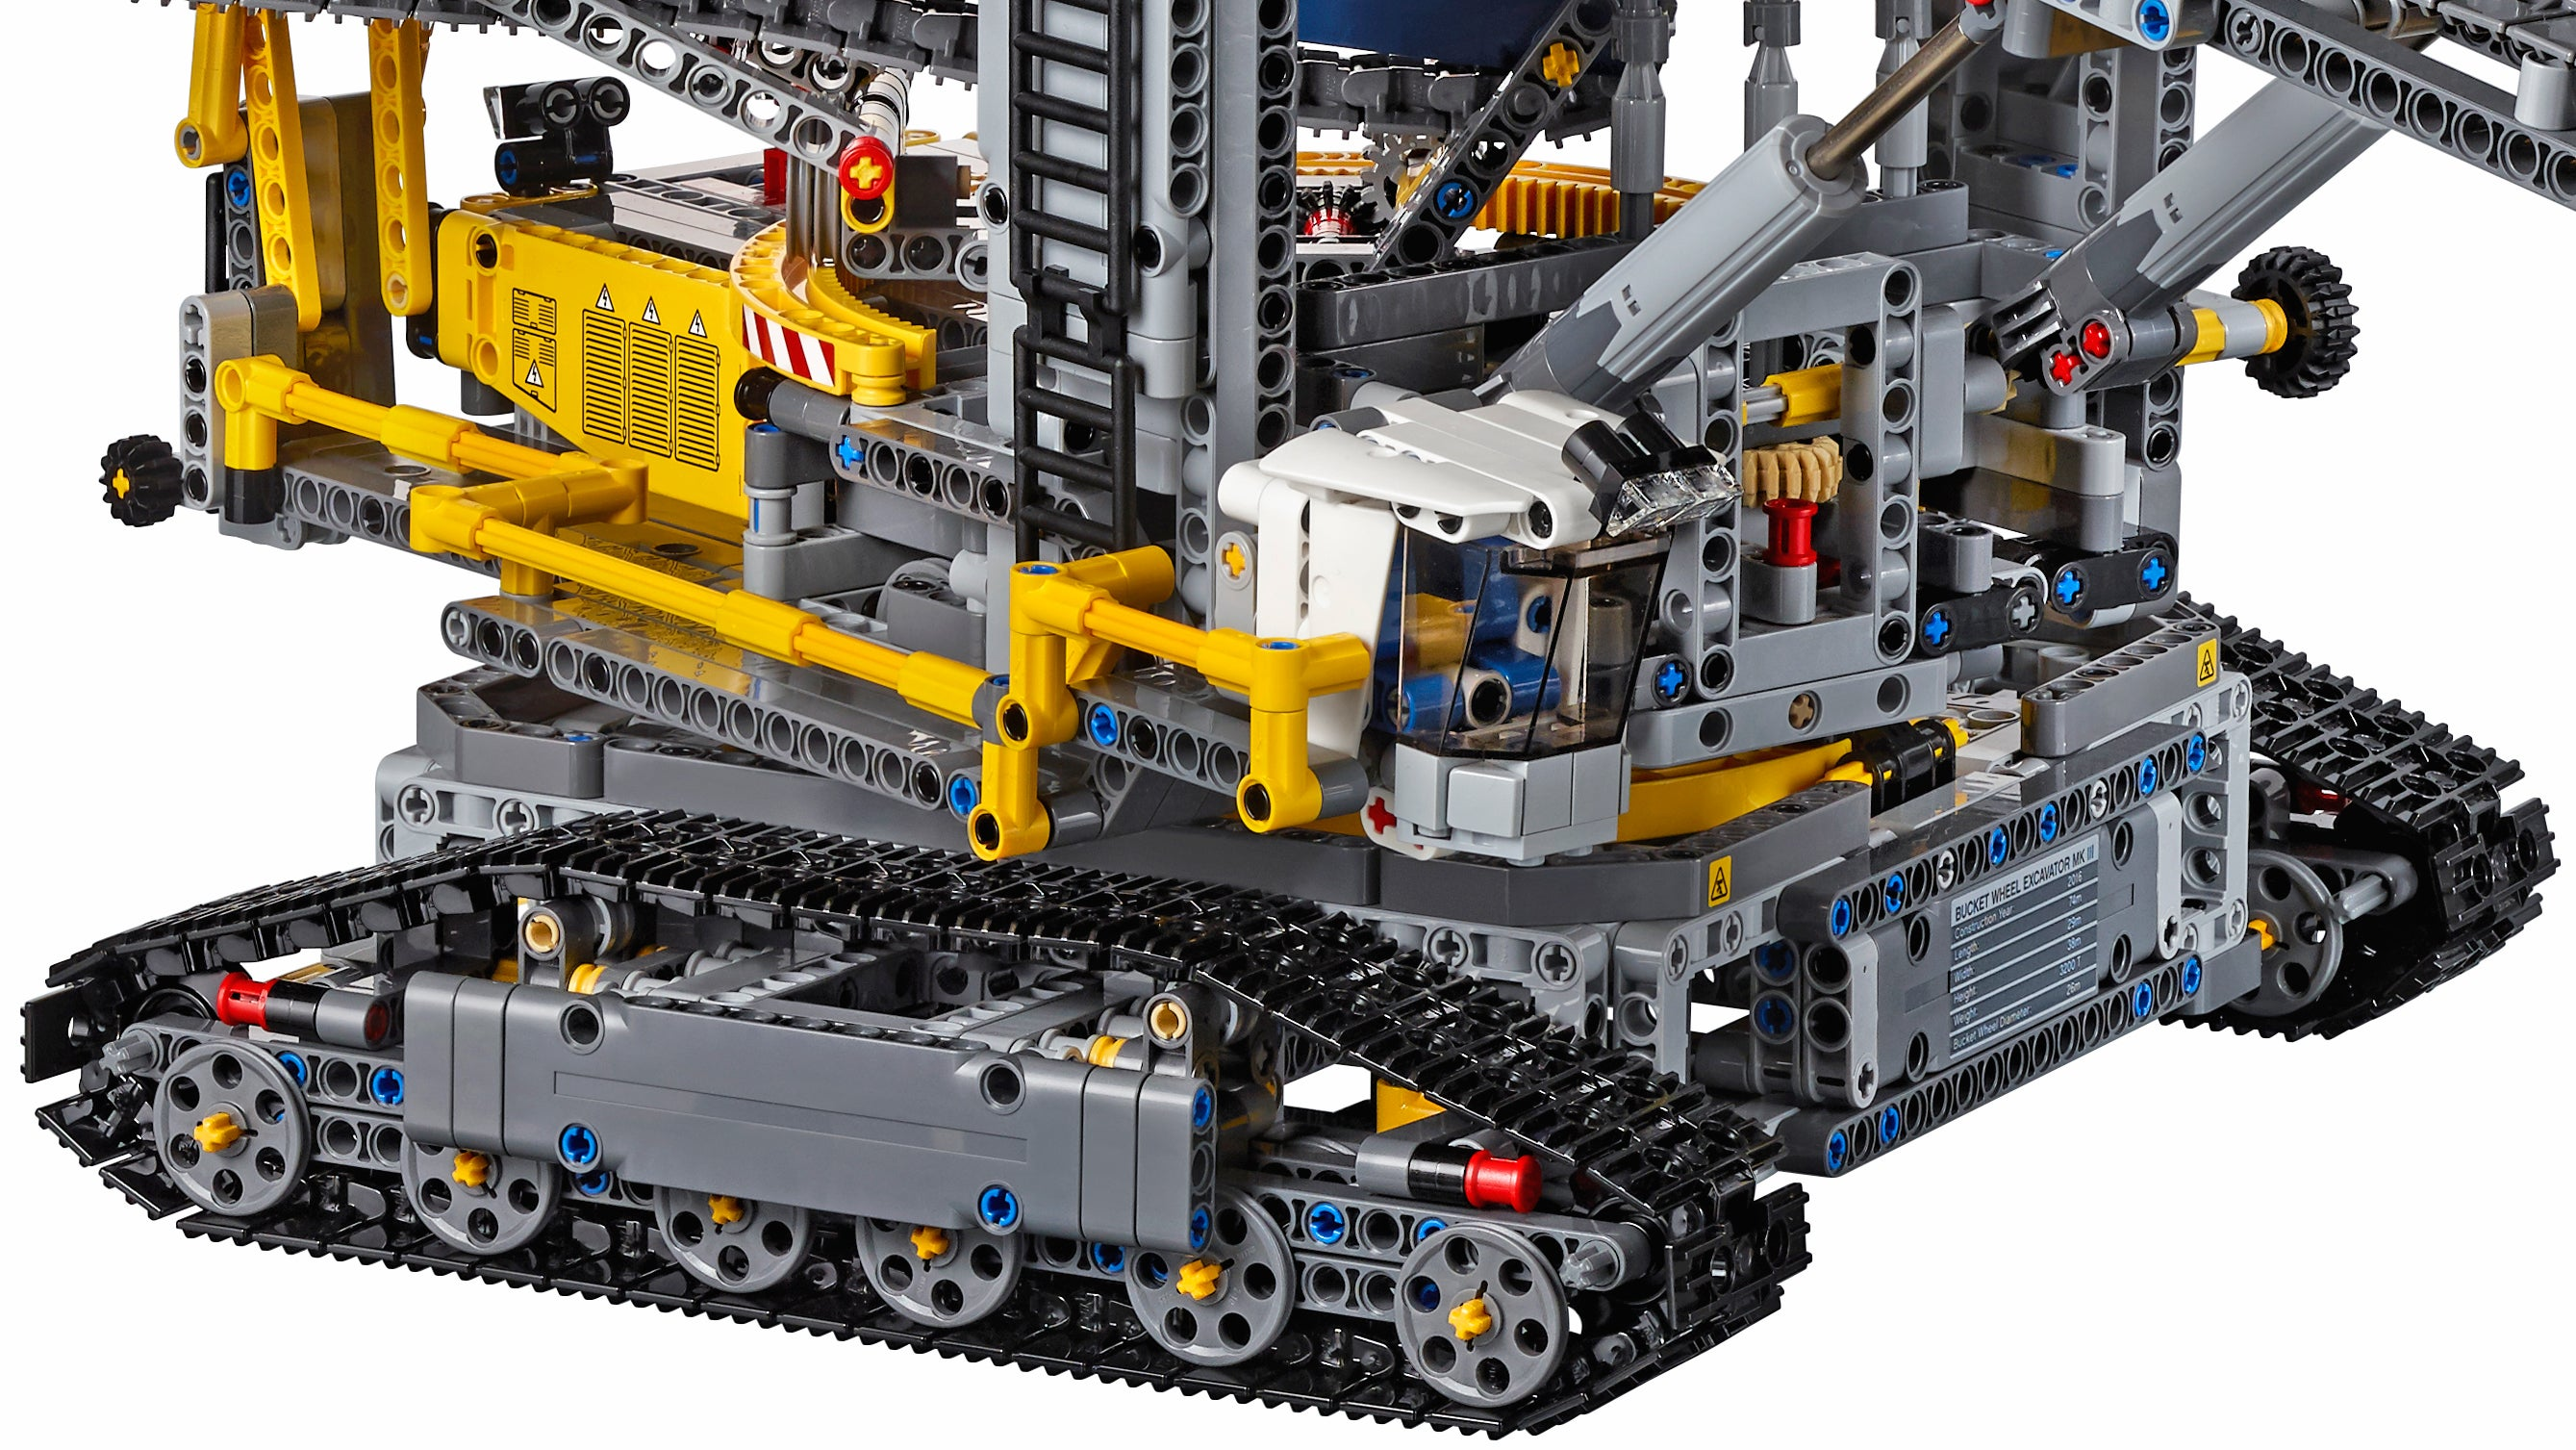 Lego Technic Schiffsschraube: LEGO's Largest Technic Set Can Dig A Moat Around Your Home